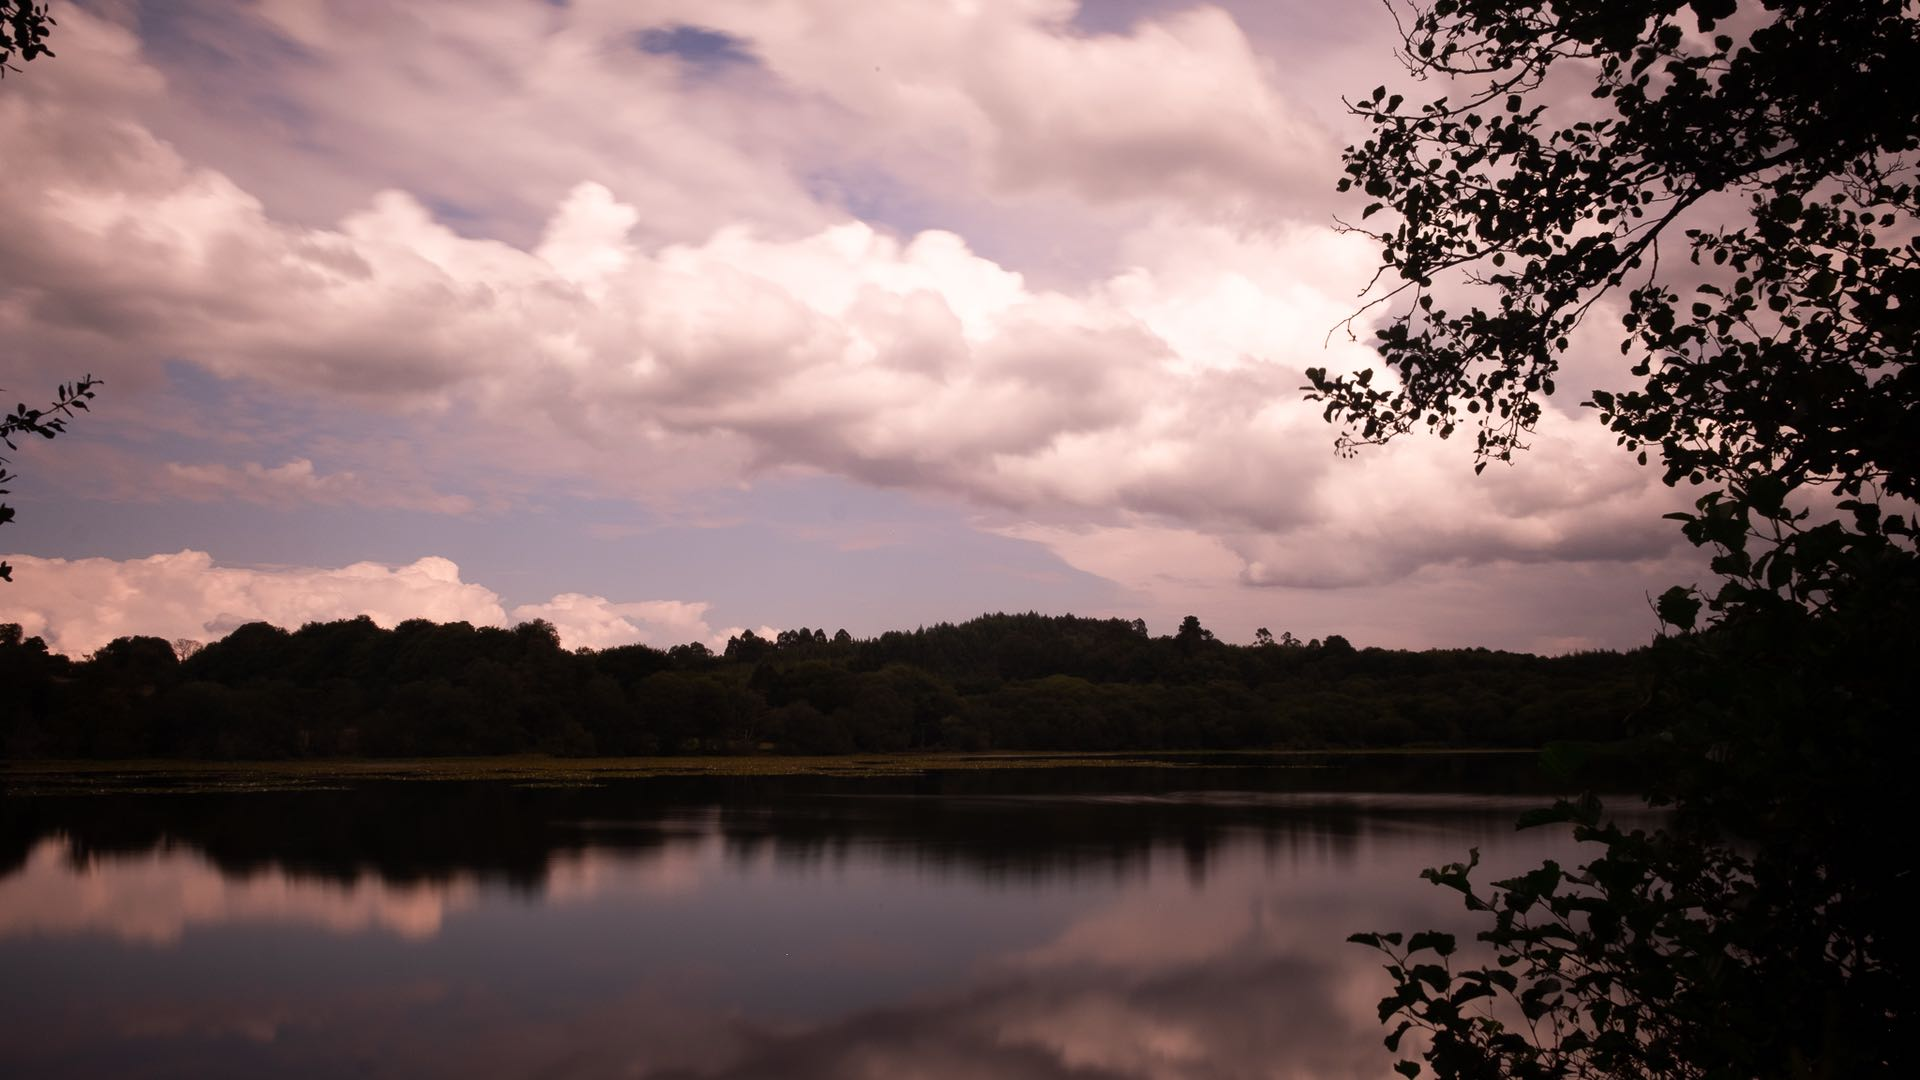 Monks lake 1920x1080